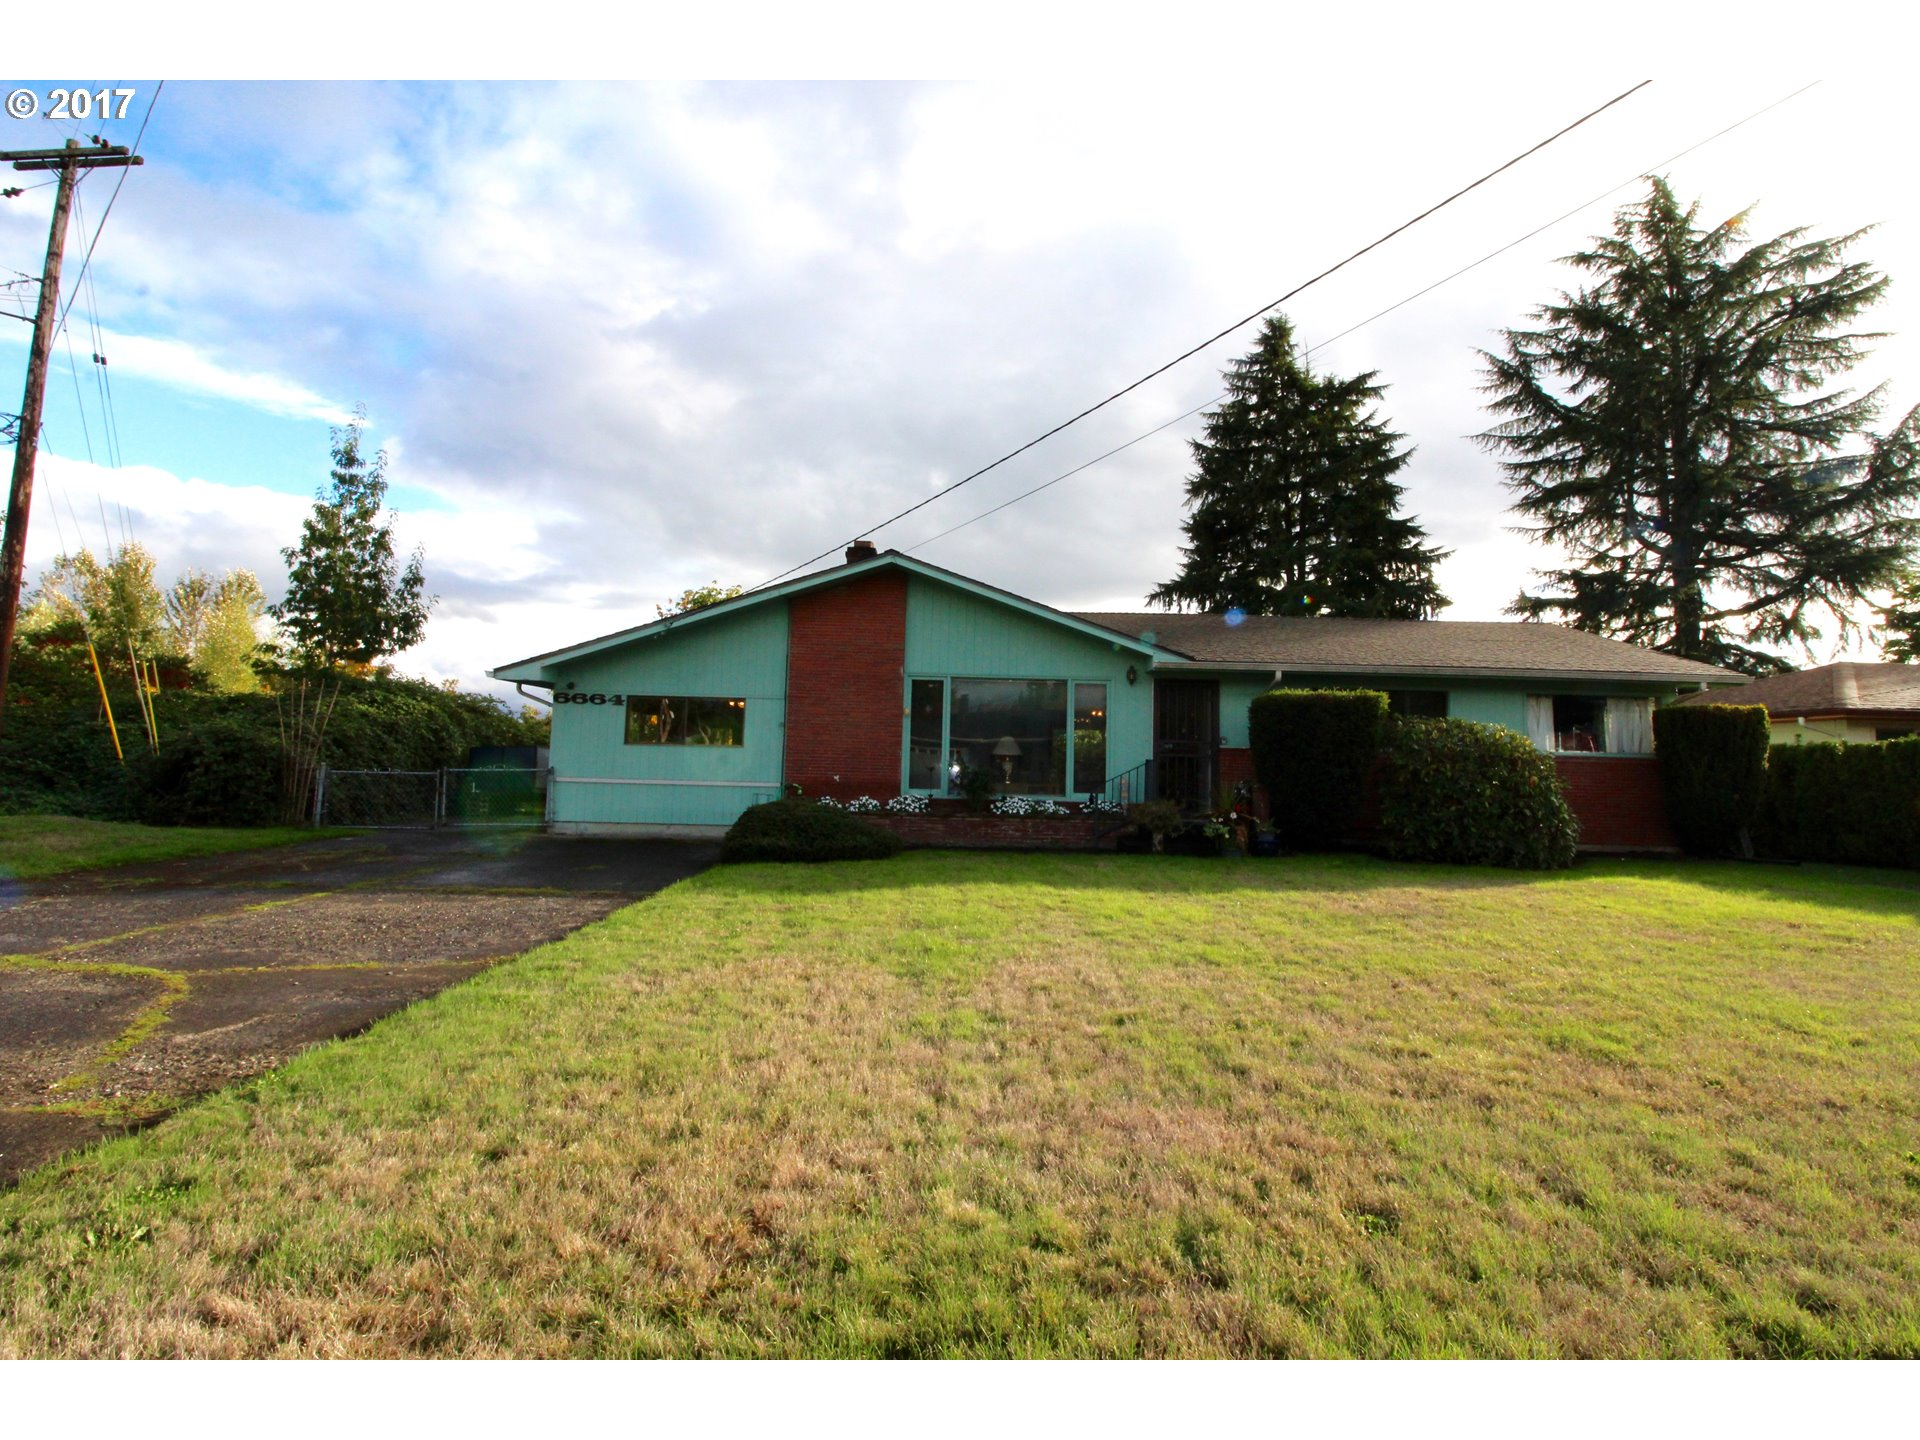 Untouched 50's ranch!  Hardwood floors throughout, covered with carpet for the past 50 years!  Over a 1/4 acre lot with room for RV parking.  Don't miss your opportunity to create your own Mid Century Masterpiece!